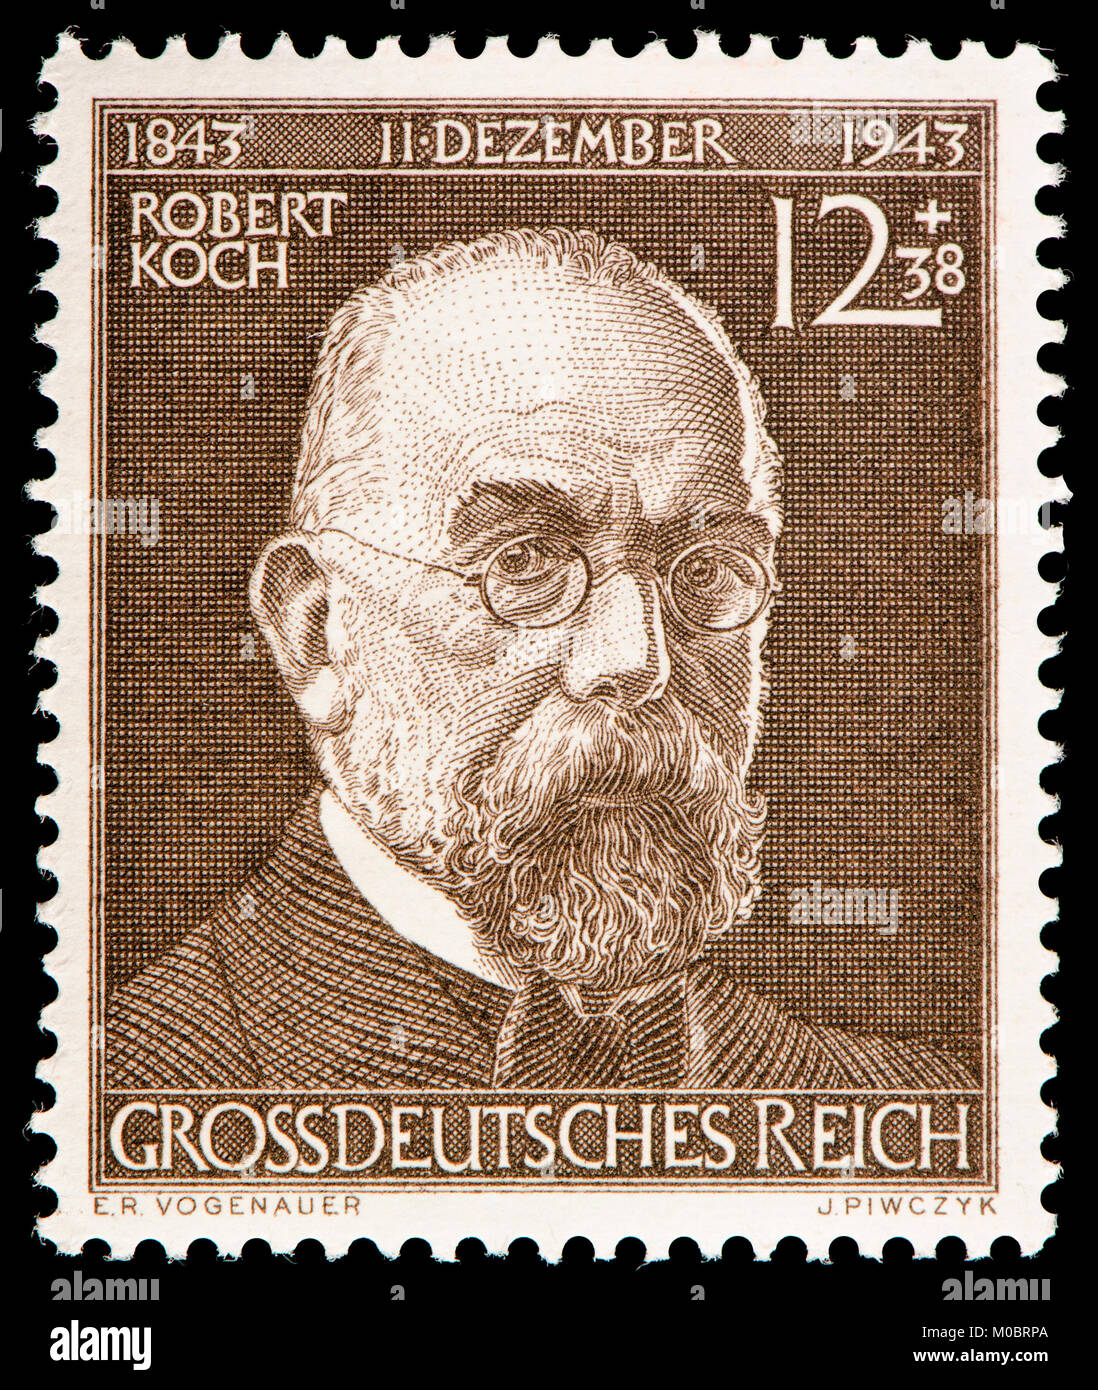 German postage stamp (1944) : Robert Heinrich Hermann Koch (1843 – 1910) German physician and microbiologist. - Stock Image